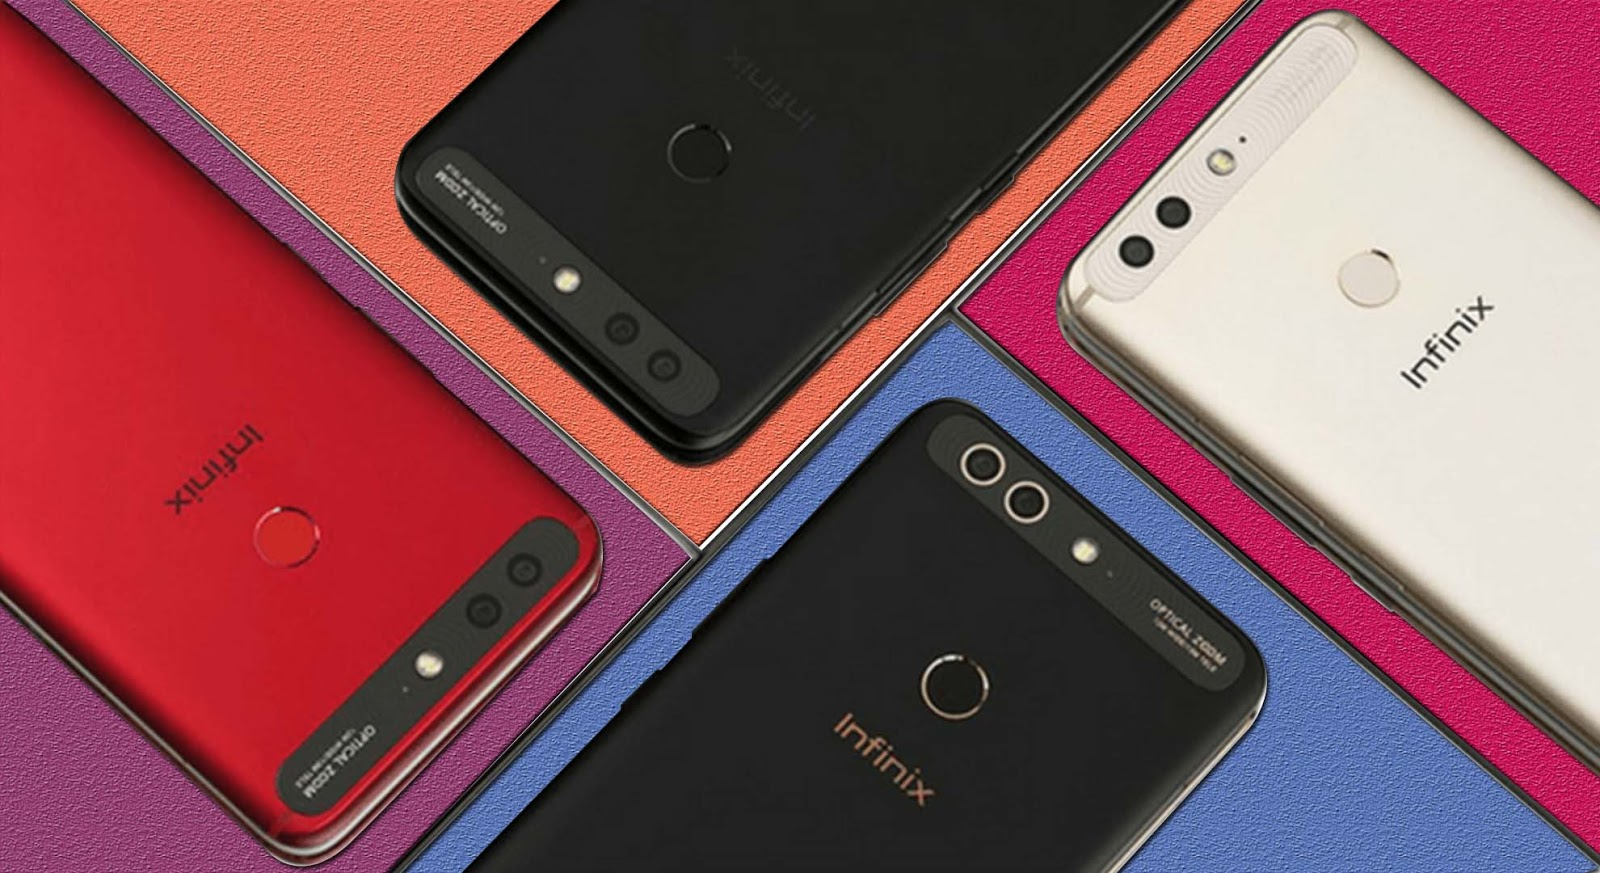 The infinix zero 5's color variations